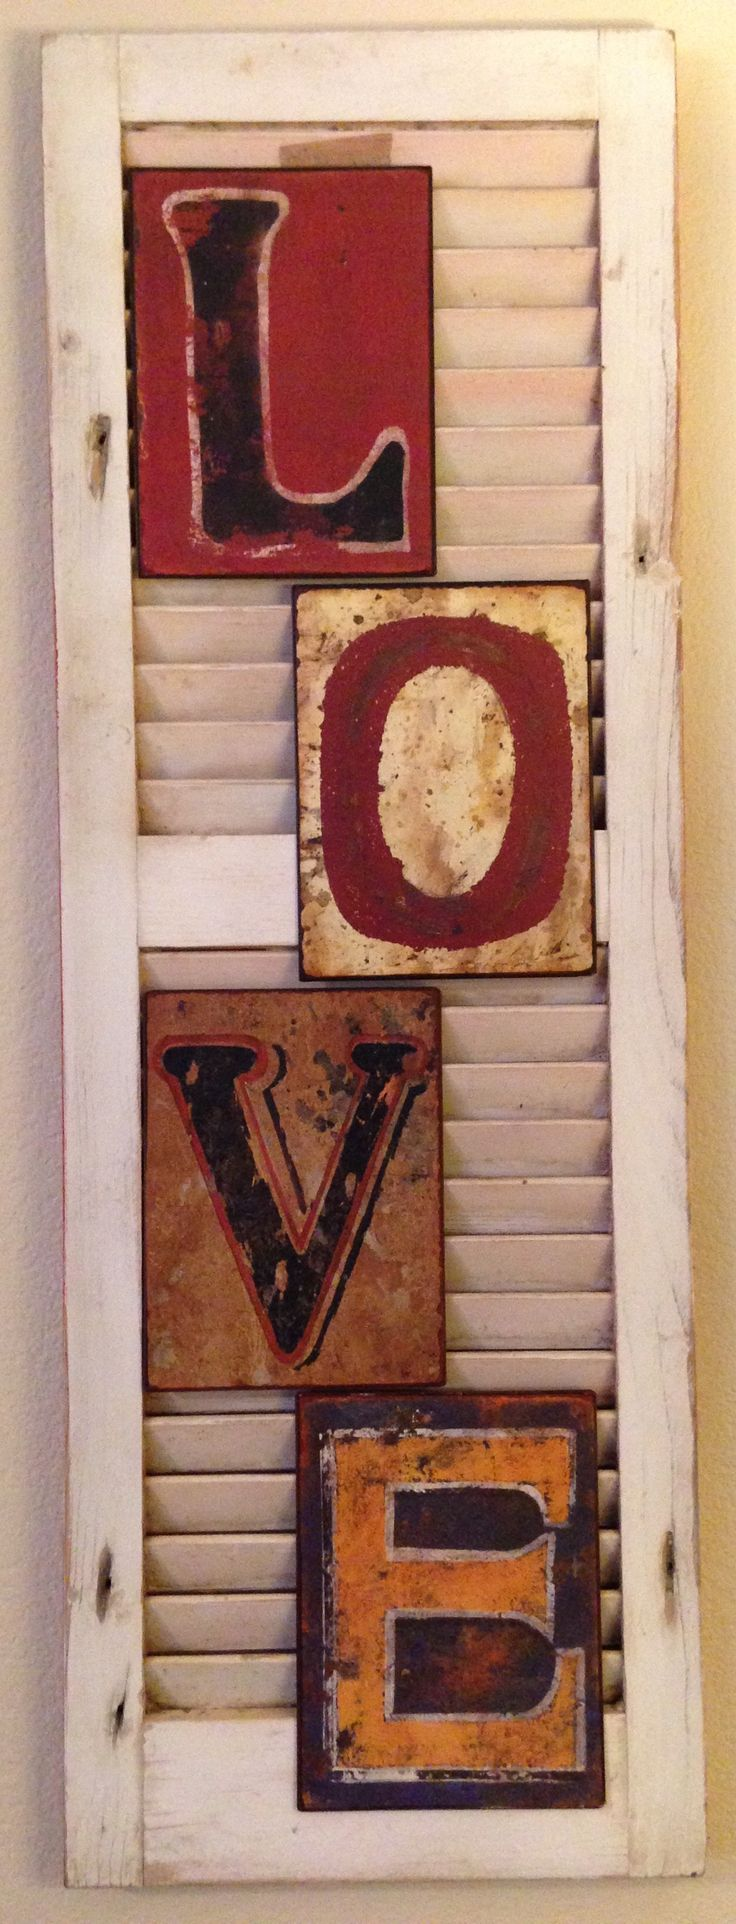 """Love the Lord your God with all your heart and with all your soul and with all your mind."" Matt 22:37 An old shutter from our previous home cleaned up rustic. The rusty looking letters hung nicely on the slats."